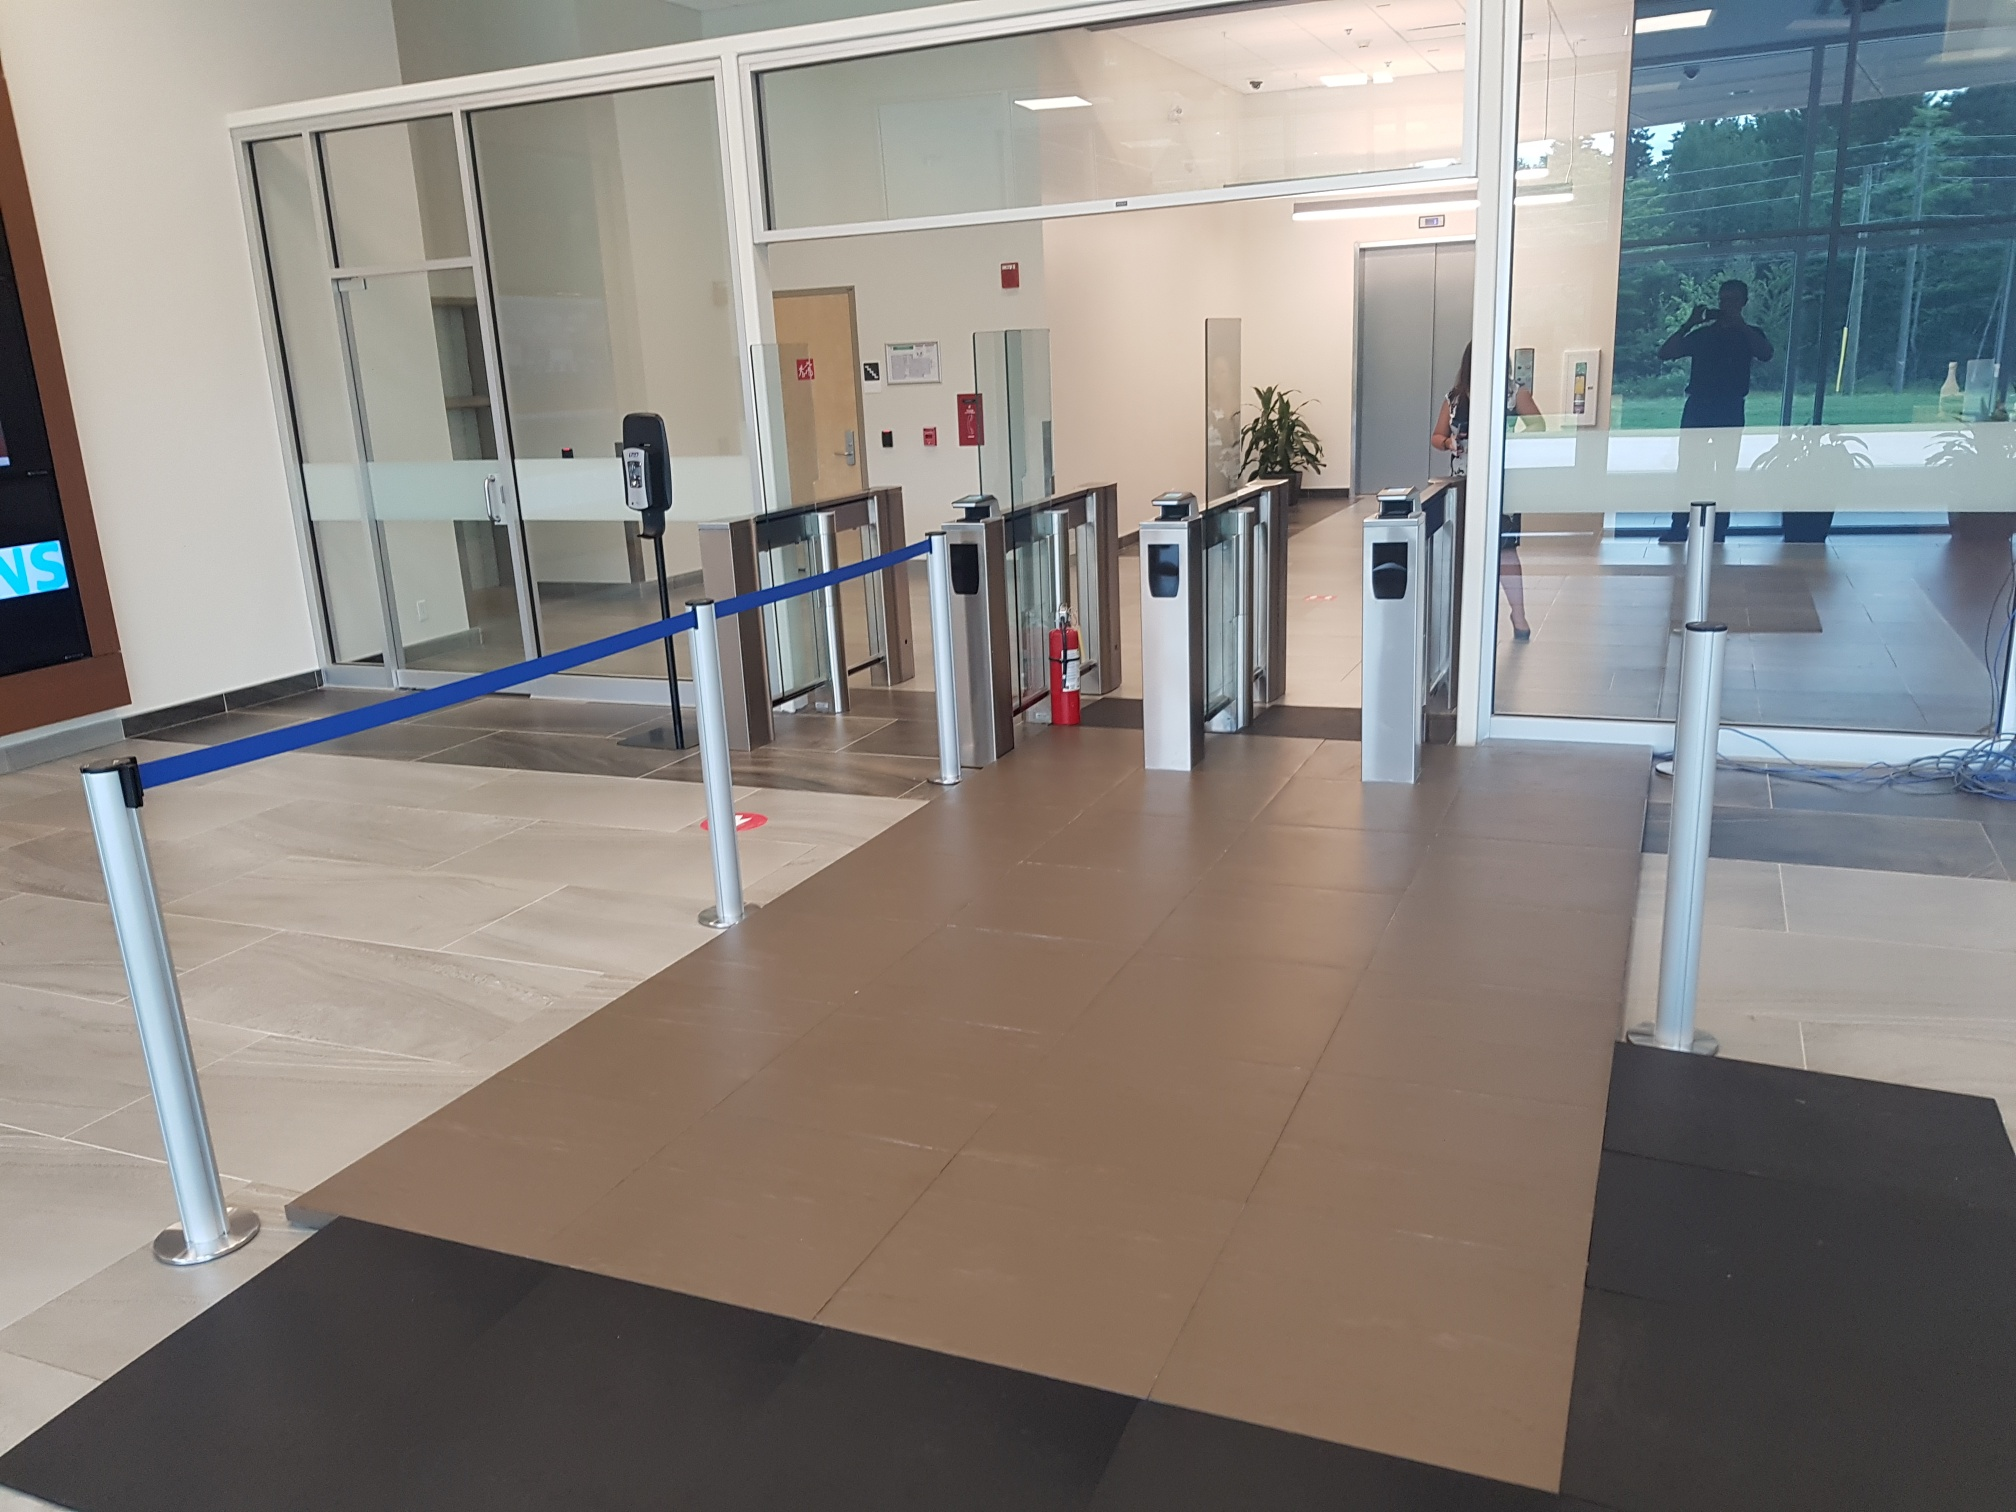 Stepscan floor tiles used as a biometric security system